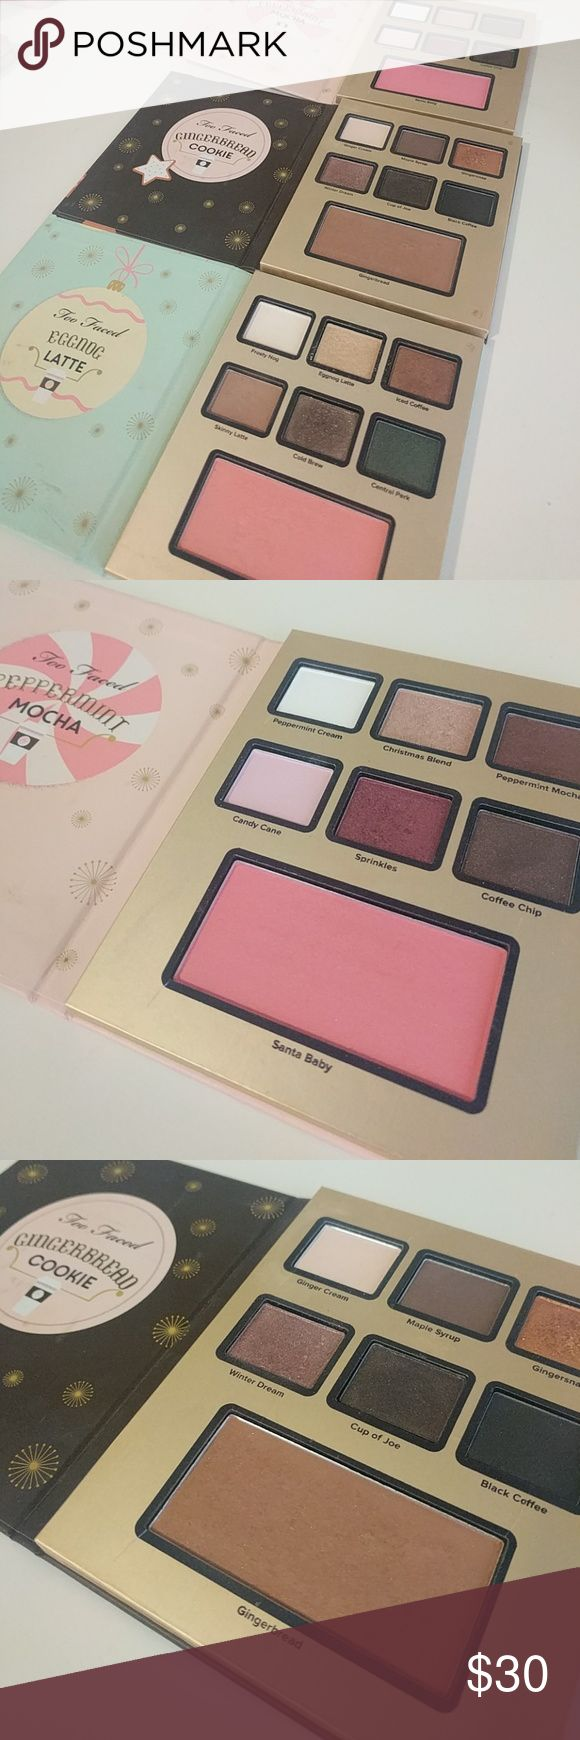 Too Faced Christmas Collection Three Two Faced Christmas Collection Palettes; Peppermint Mocha, Gingerbread Cookie and Eggnog Latte. Eyeshadow and Blush in two palettes and eyeshadow and bronzer in the other. Very beautiful and pigmented palettes. Too Faced Makeup Eyeshadow